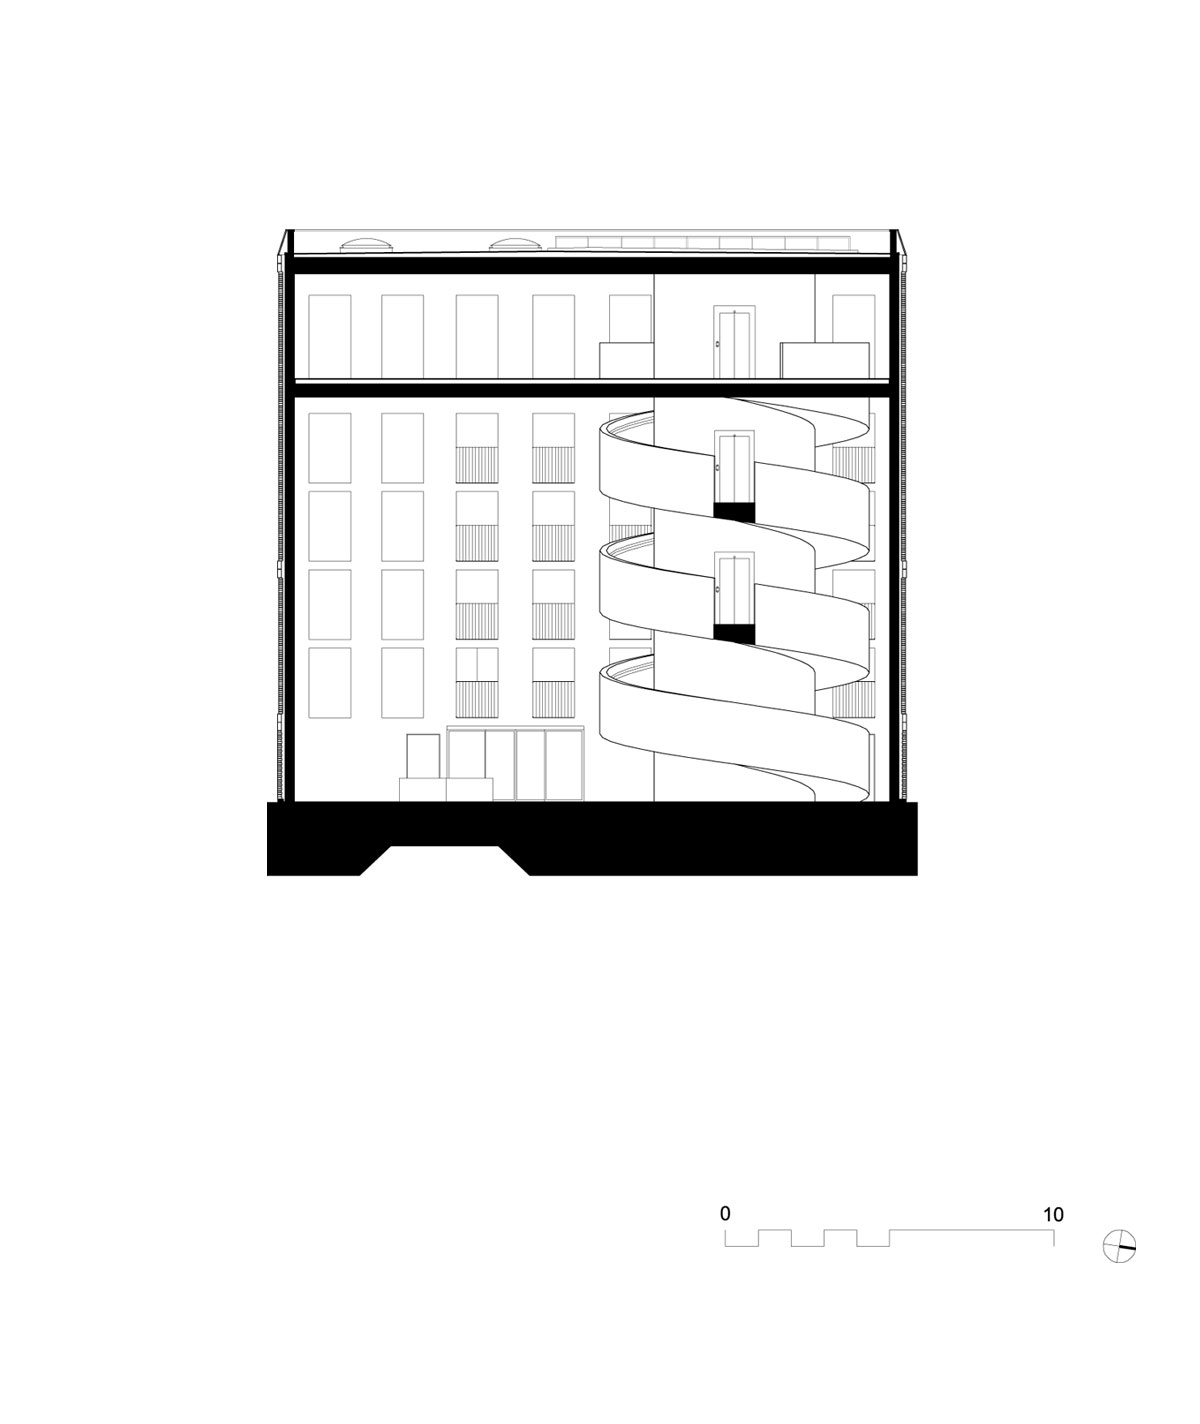 Archetype Square House Diagram